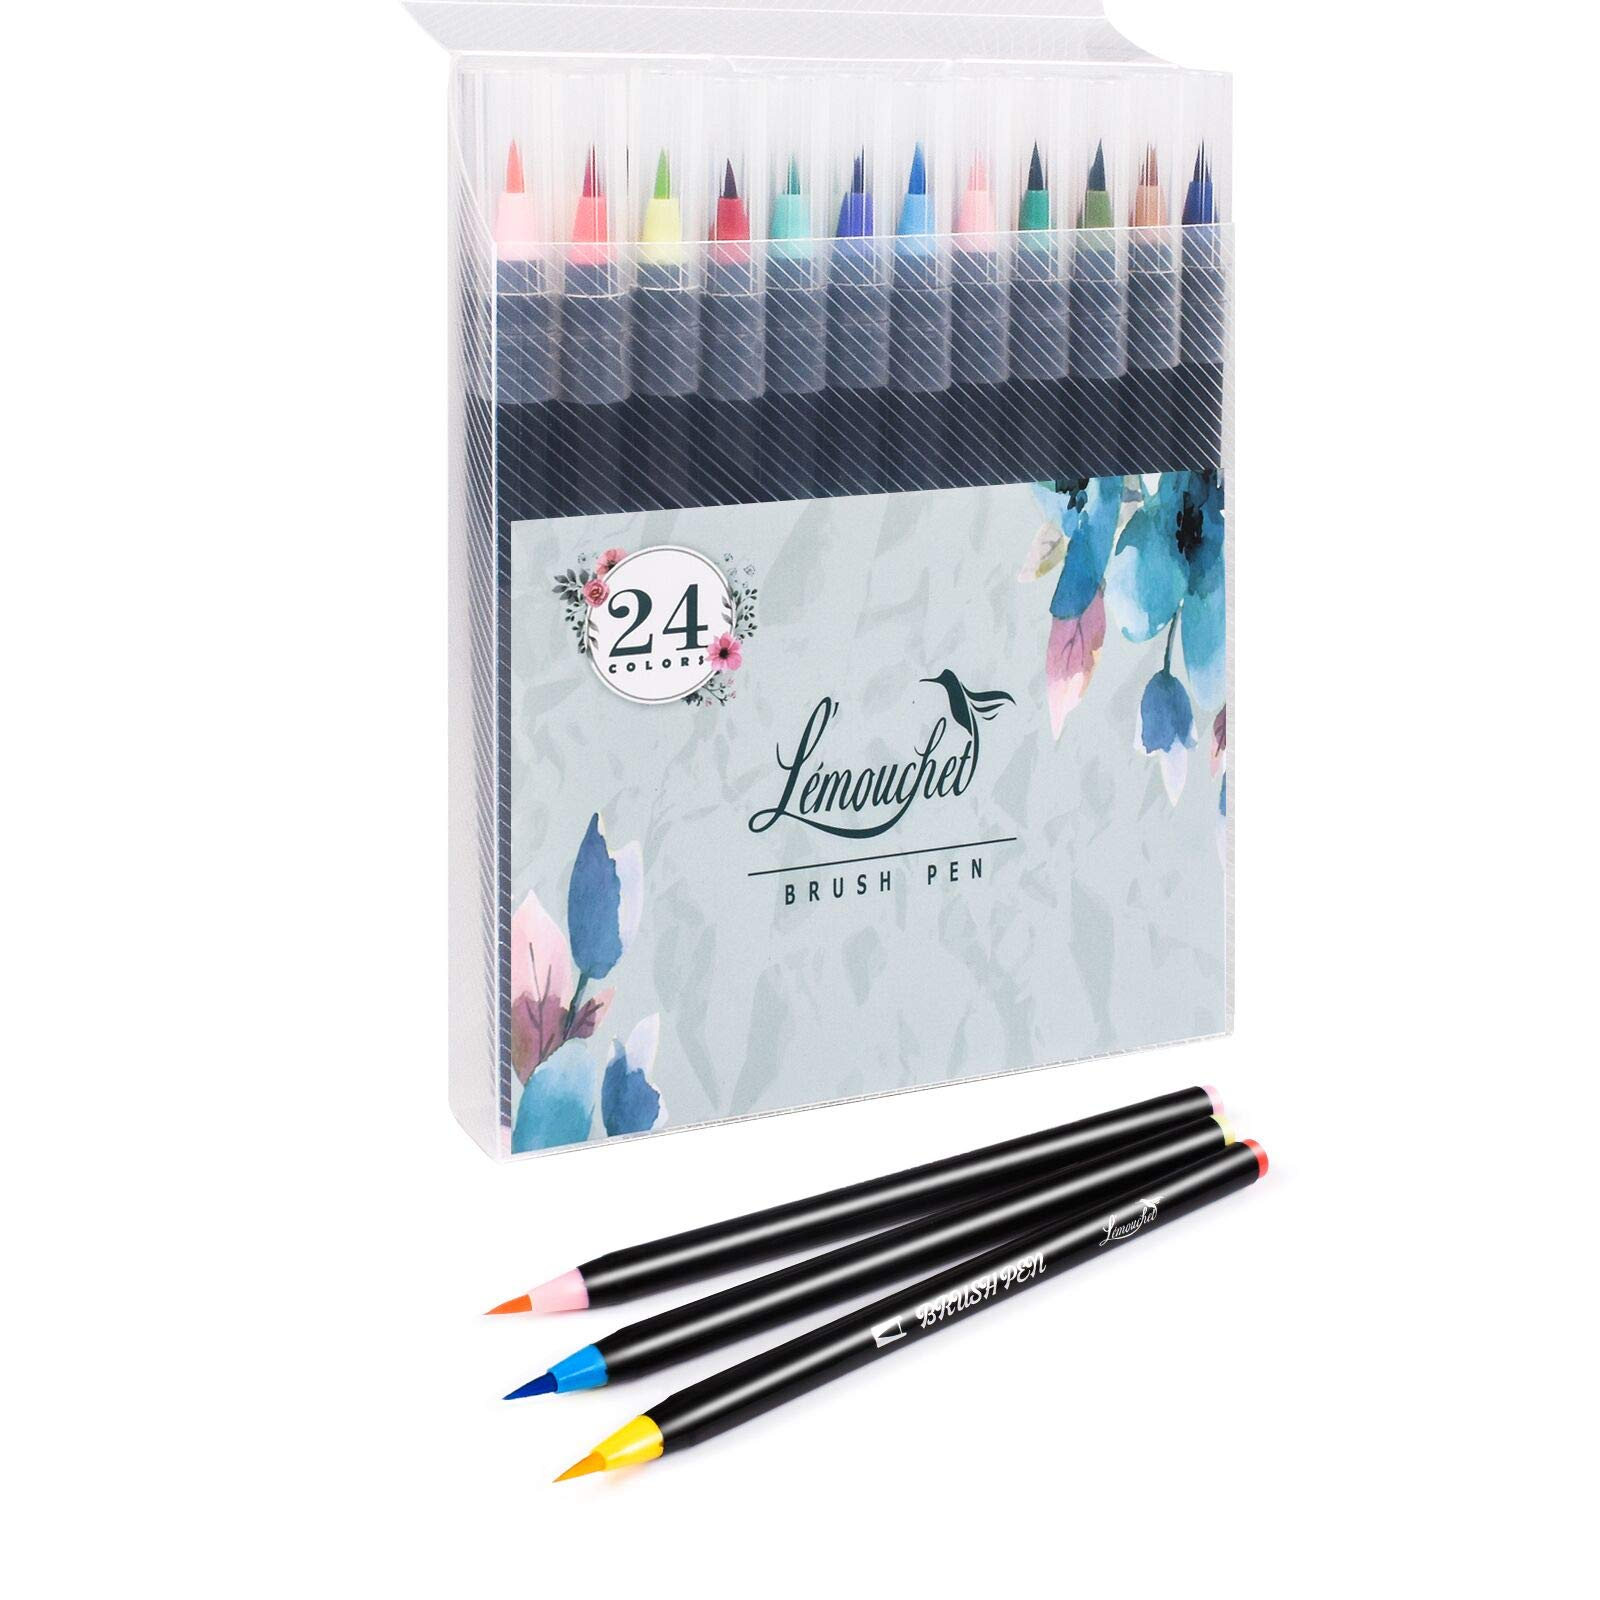 L\'ÉMOUCHET 24 Watercolor Brush Markers Pen Art Markers, Water Based Drawing Marker Brushes Colored Pens Set for Adult Coloring Books Manga Comic Calligraphy Journal Note Taking Drawing Planner Art